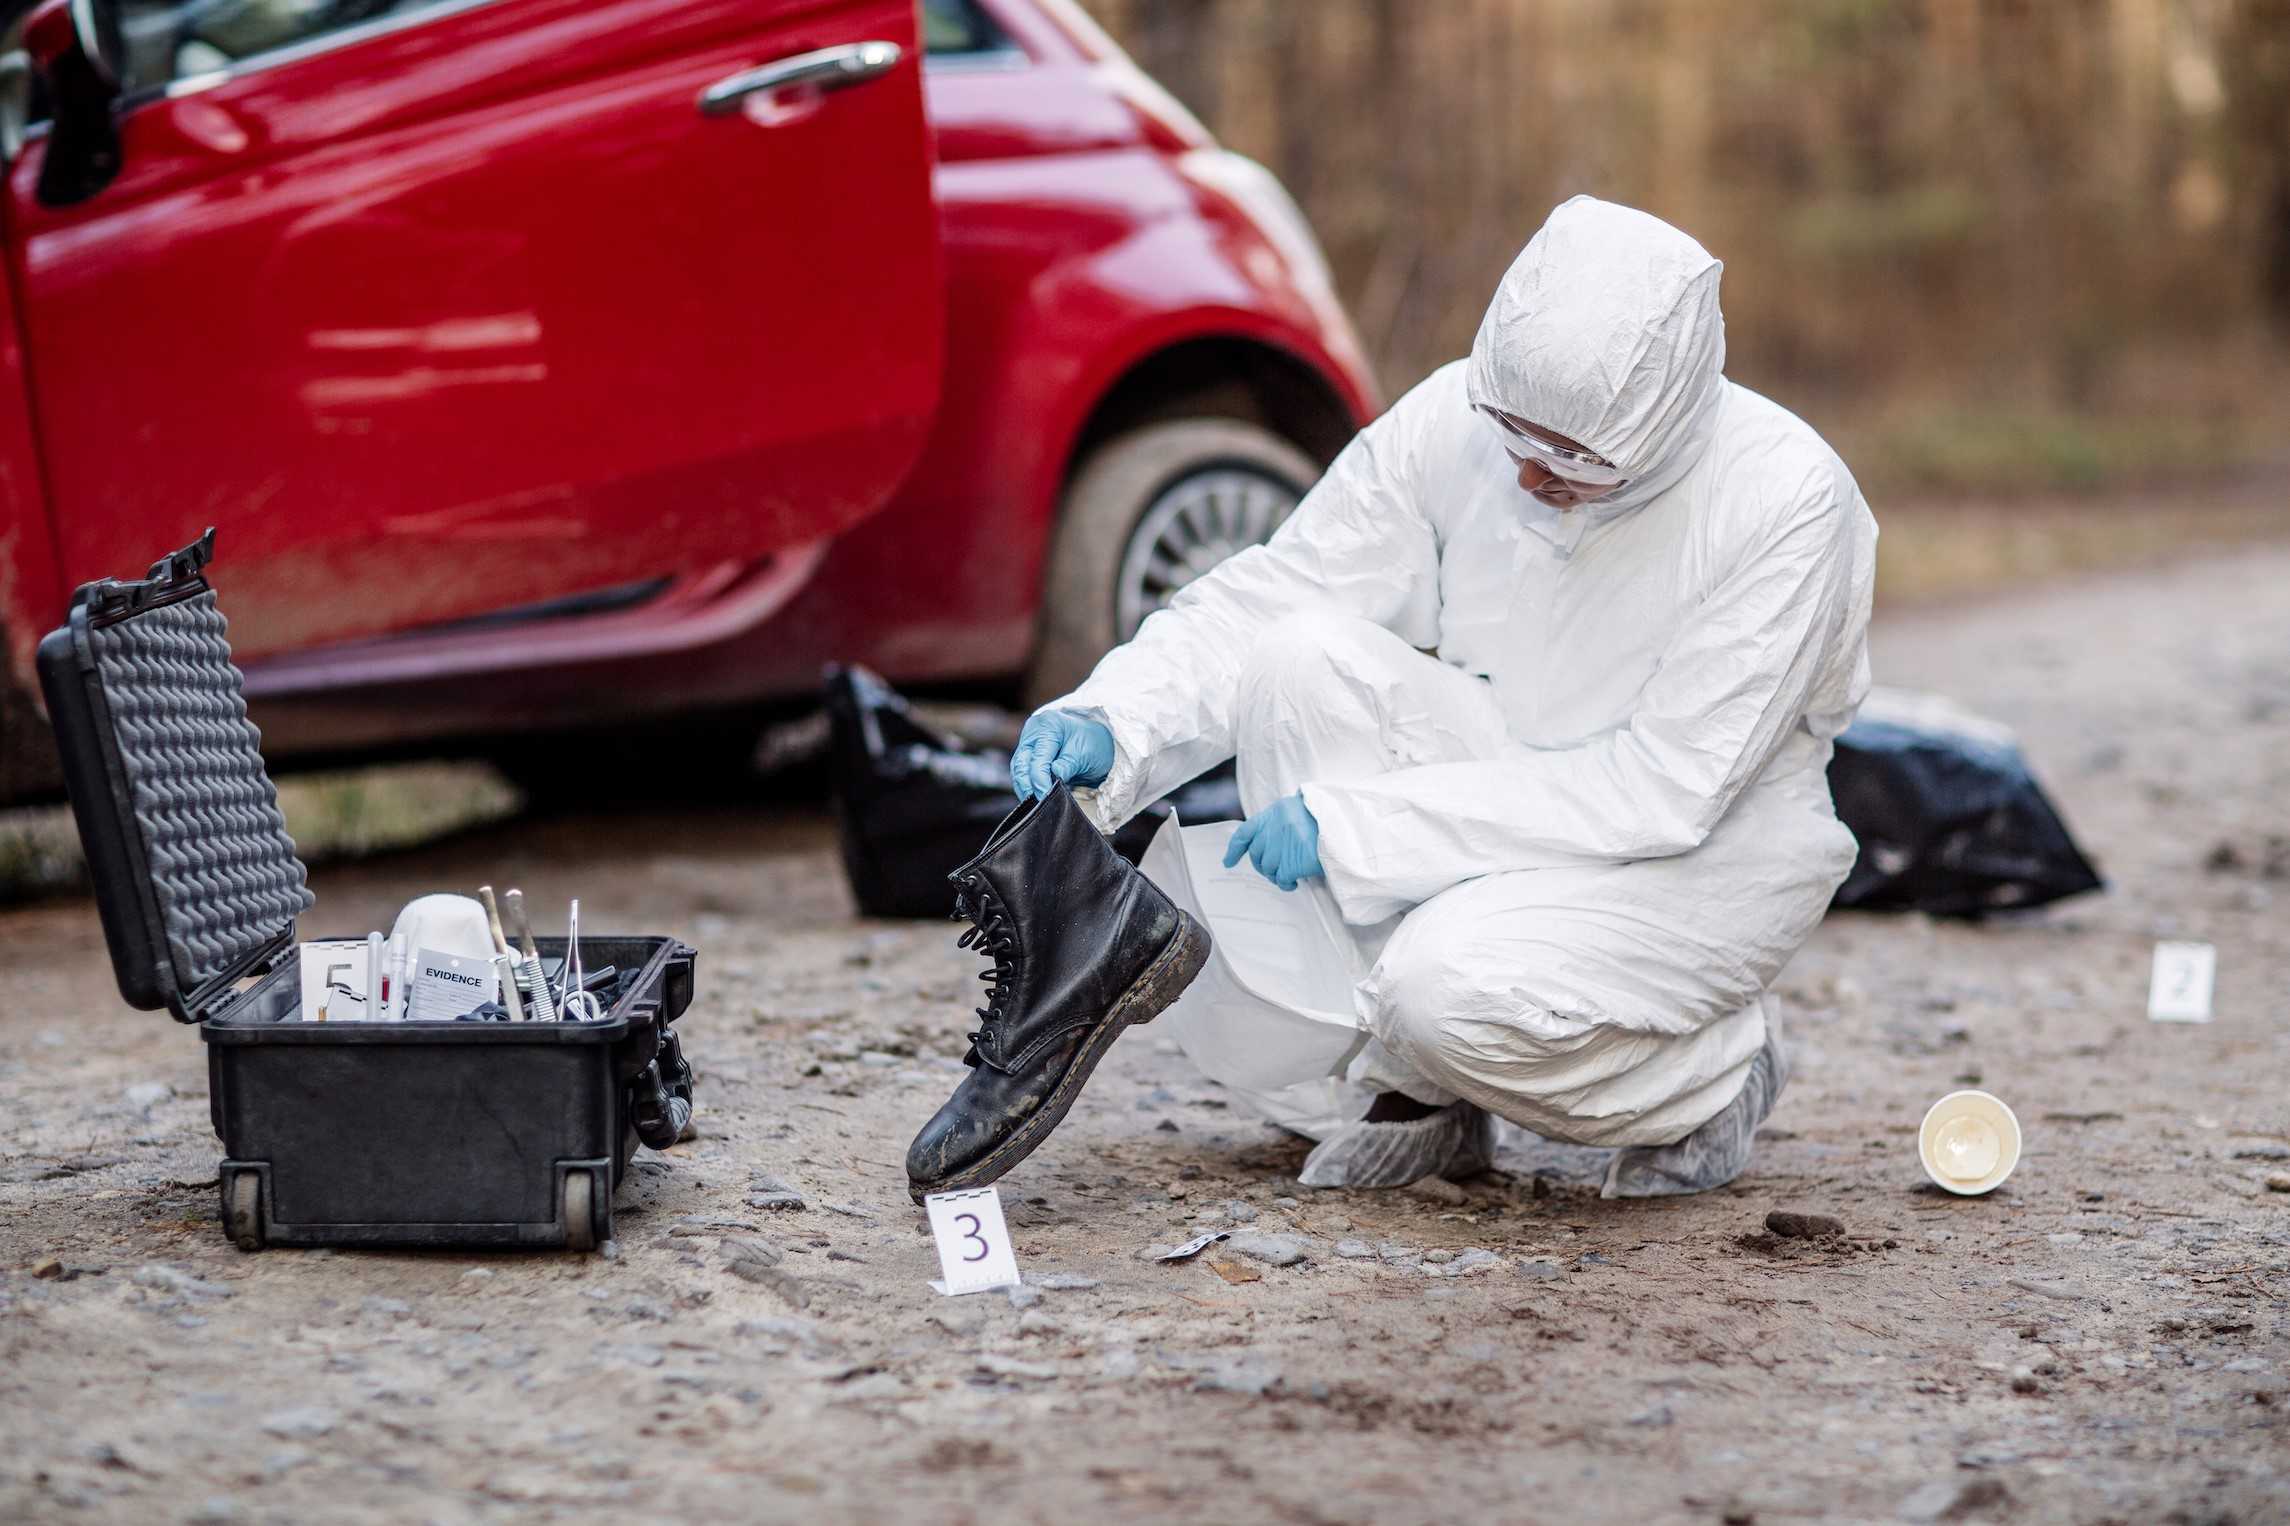 Forensic Technician Analyzing Evidence at a Crime Scene